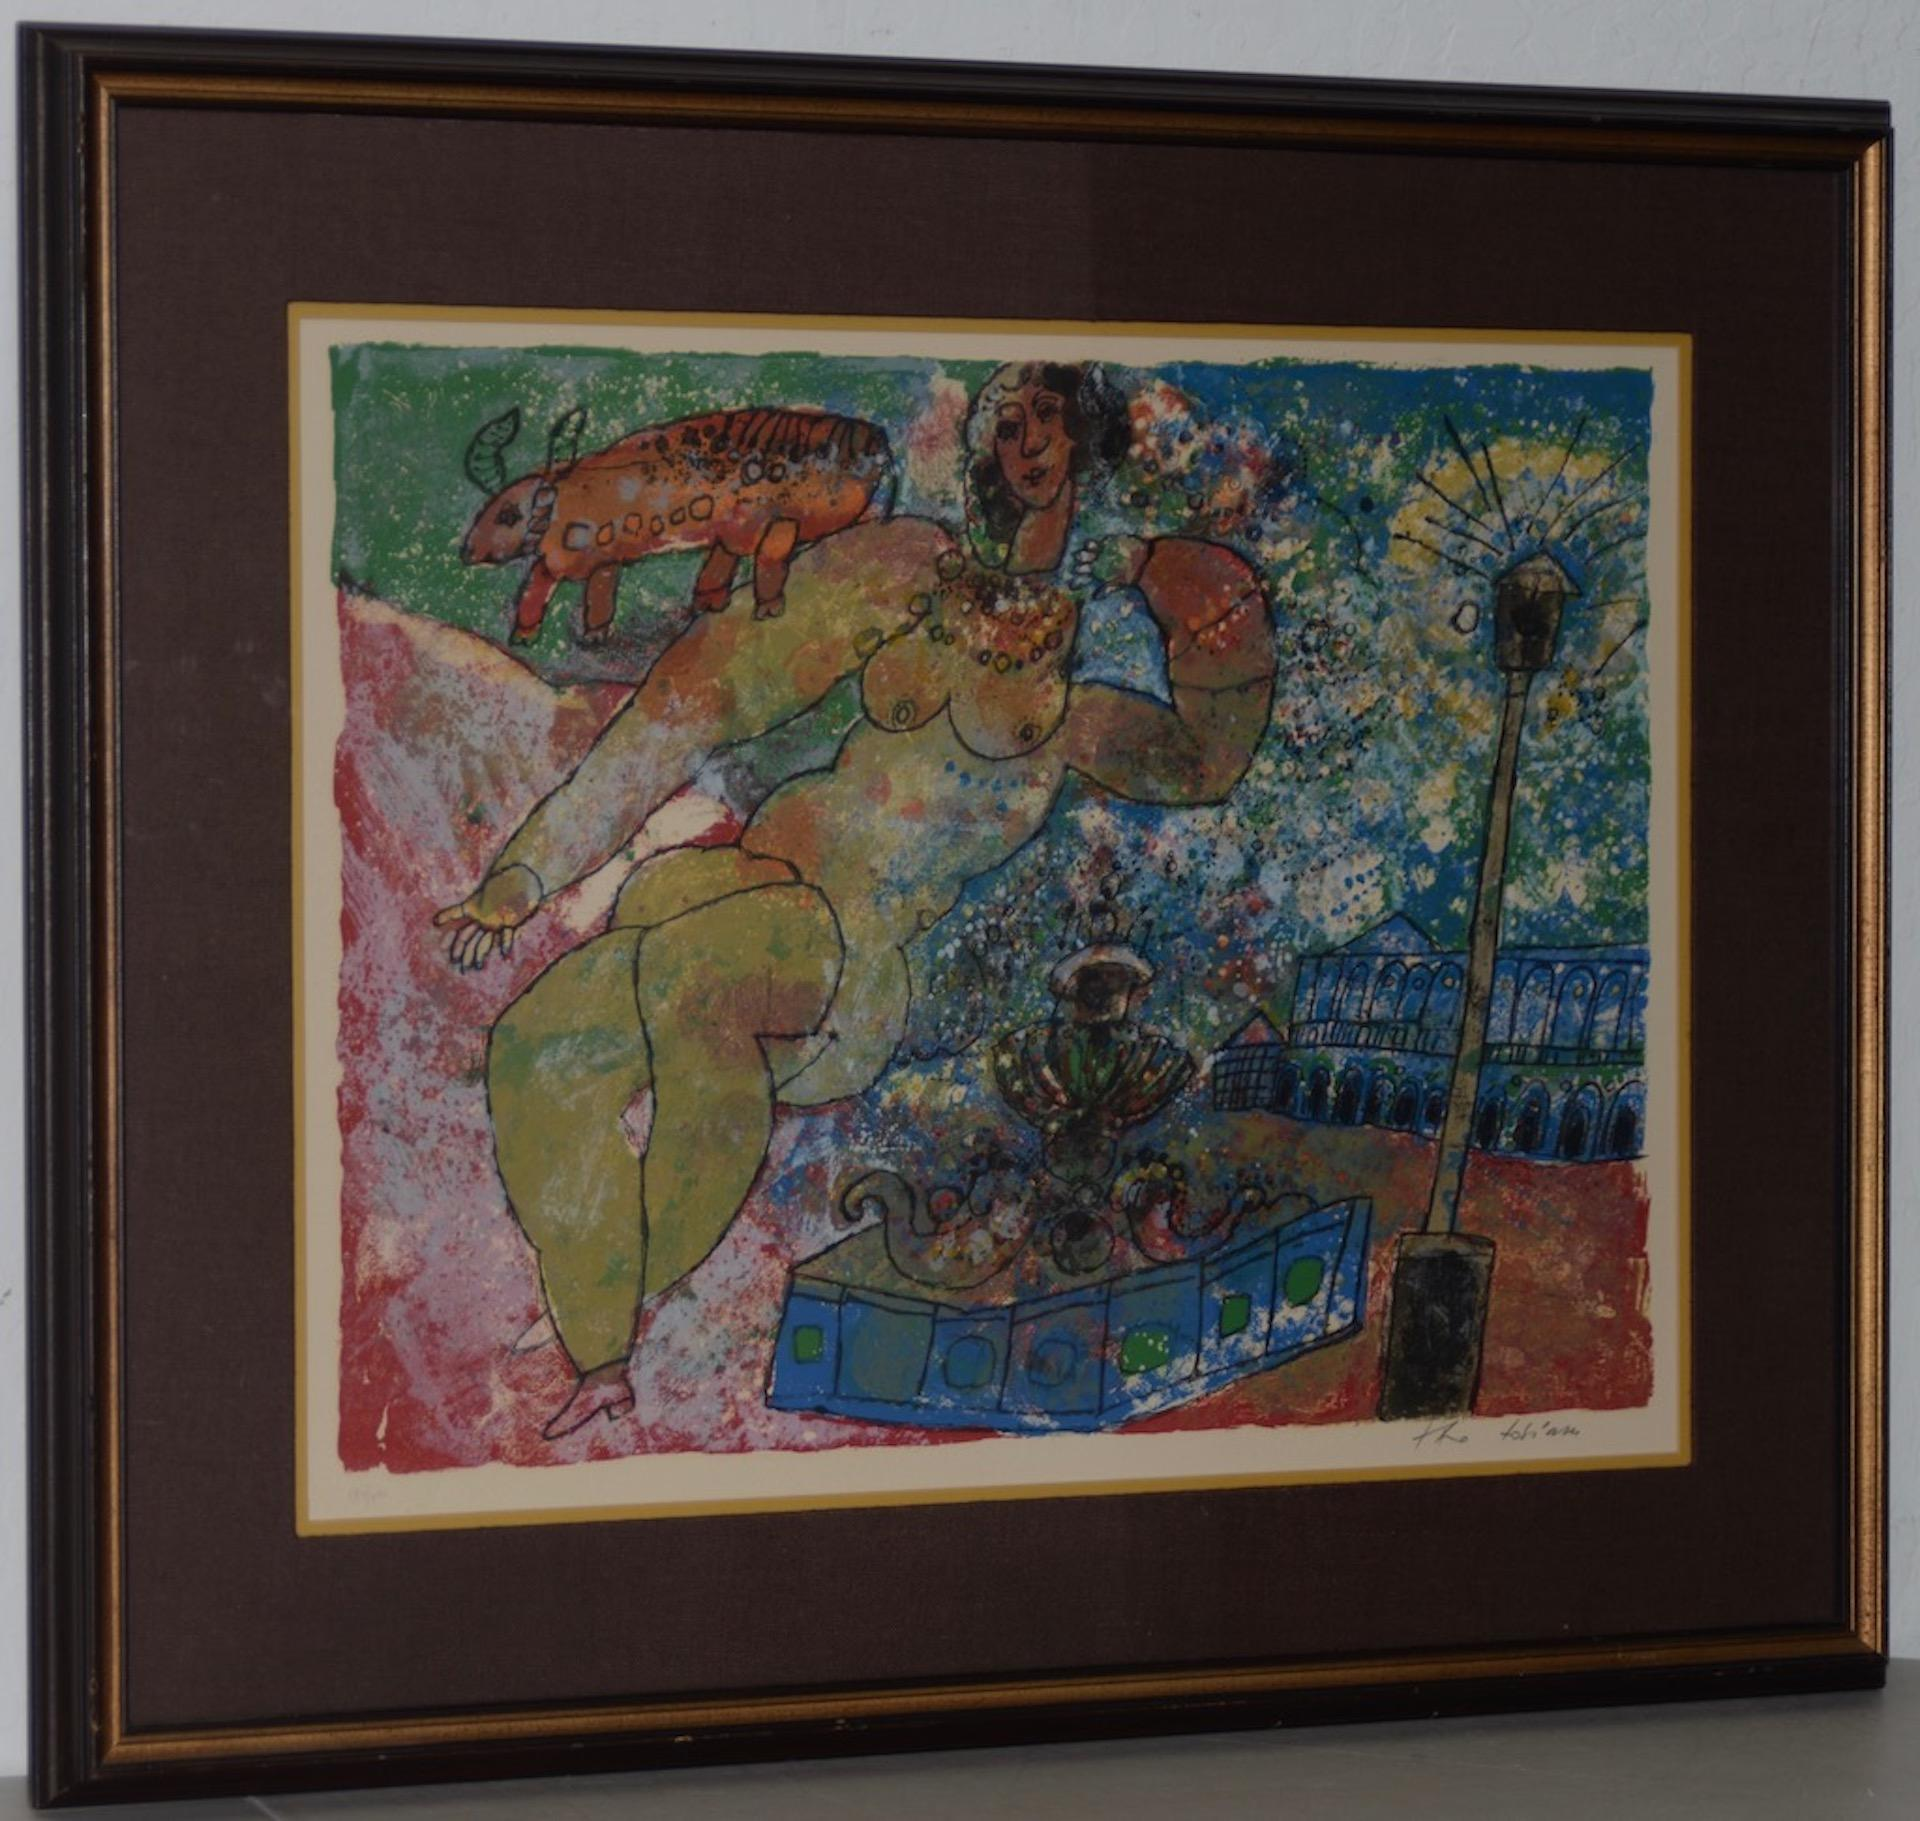 """Theo Tobiasse """"Woman"""" Original Color Lithograph Signed / Numbered c.1960s"""